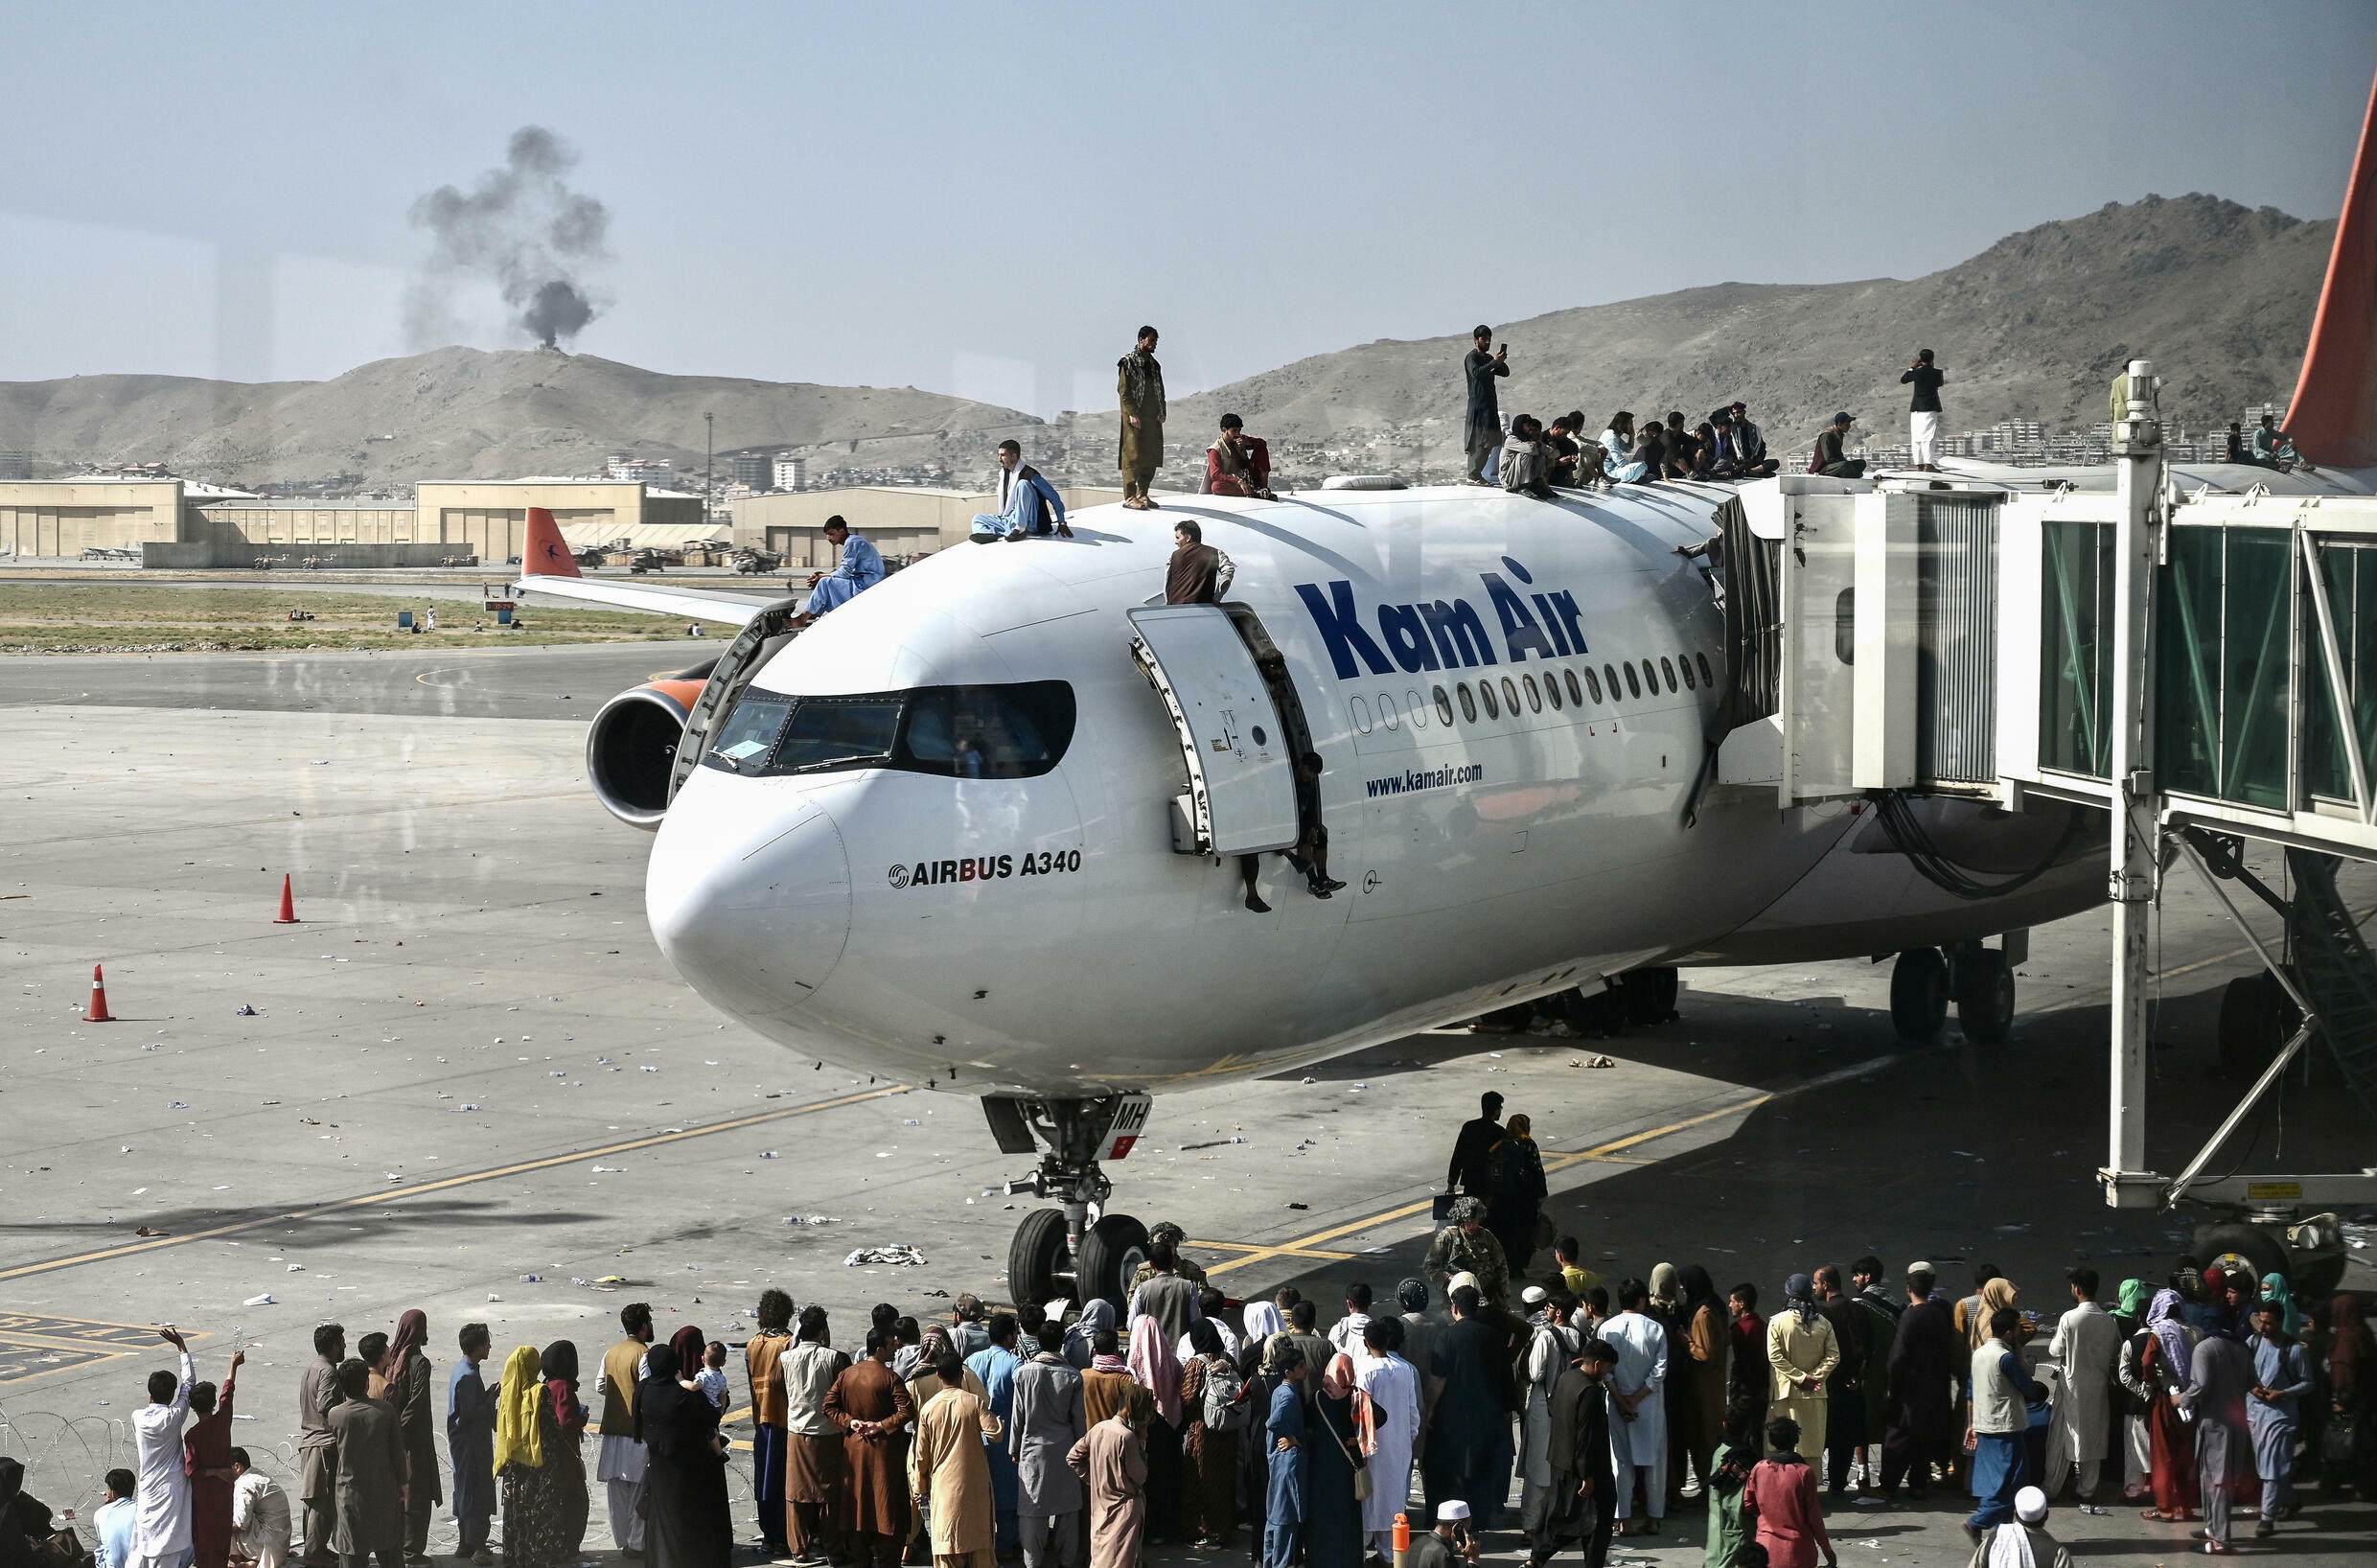 Afghan people climb atop a plane as they wait at the Kabul airport after a stunningly swift end to Afghanistan's 20-year war, as thousands of people mobbed the city's airport trying to flee the group's feared hardline brand of Islamist rule